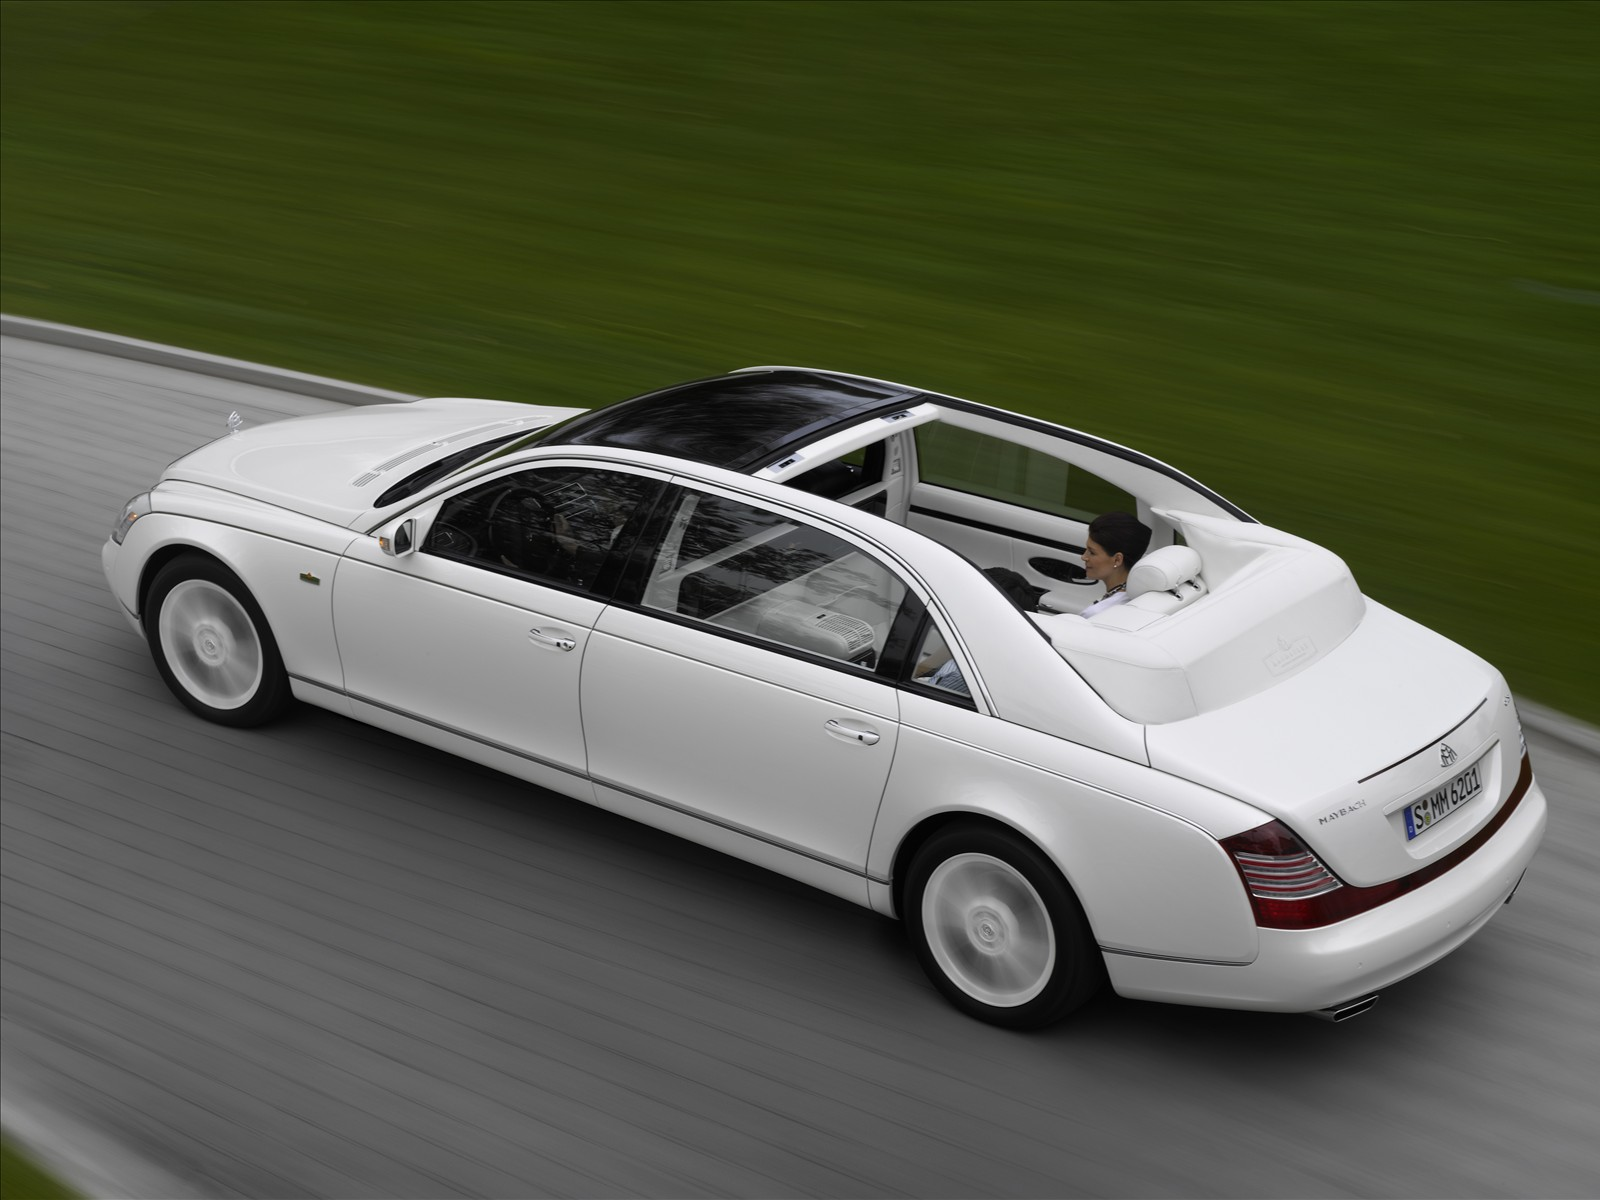 MOST EXPENSIVE CARS IN THE WORLD - 2015: #8 - Maybach Landaulet - $1.3M